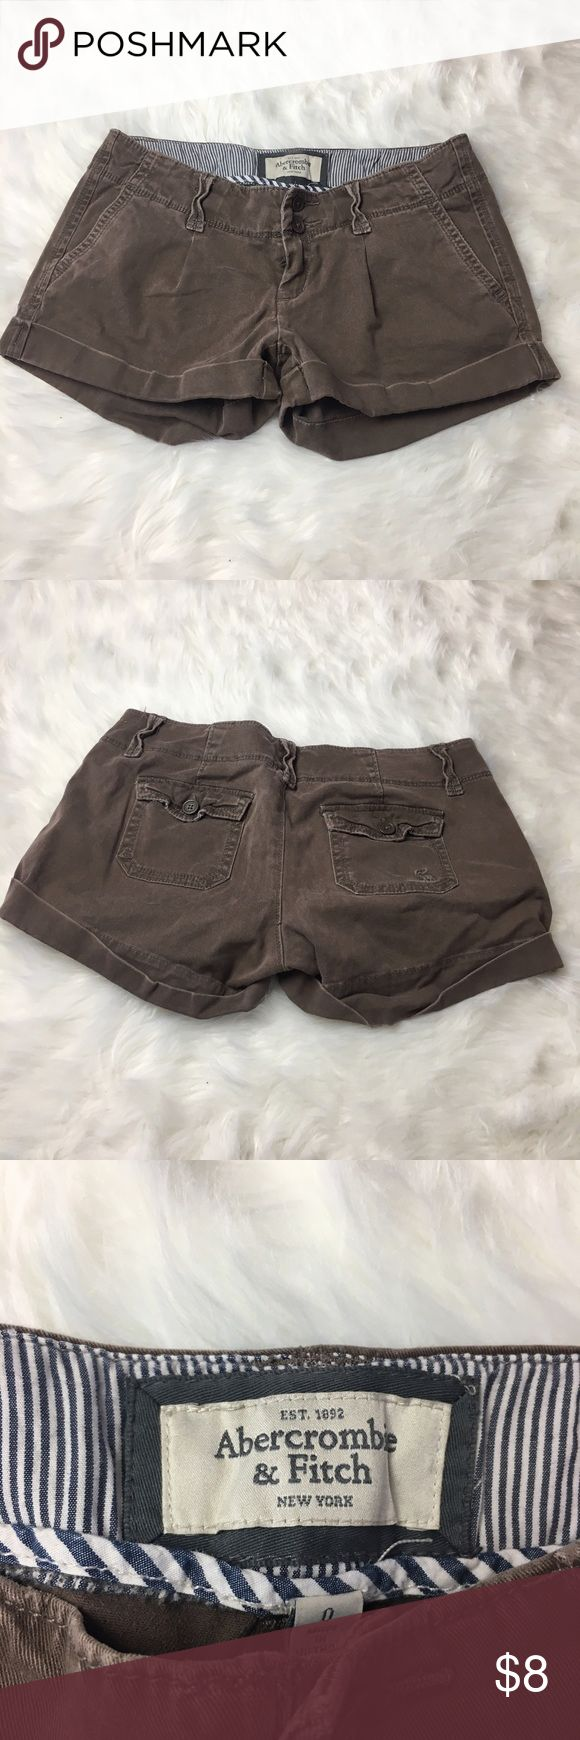 Abercrombie and Fitch shorts Abercrombie and Fitch stretch shorts  size 0. Bin B Abercrombie & Fitch Shorts